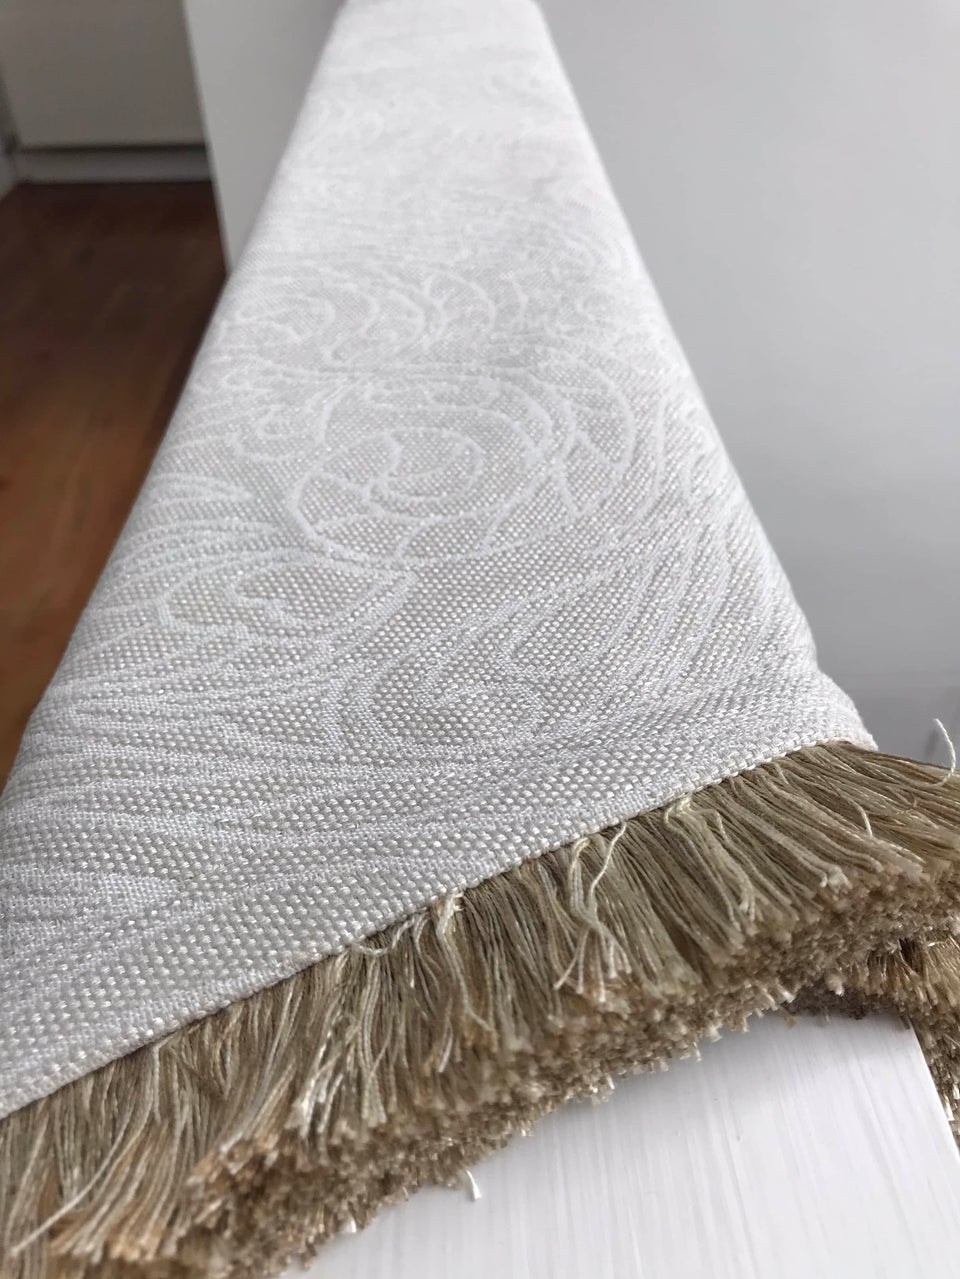 Heavy Cream Throw with a Subtle Floral Pattern